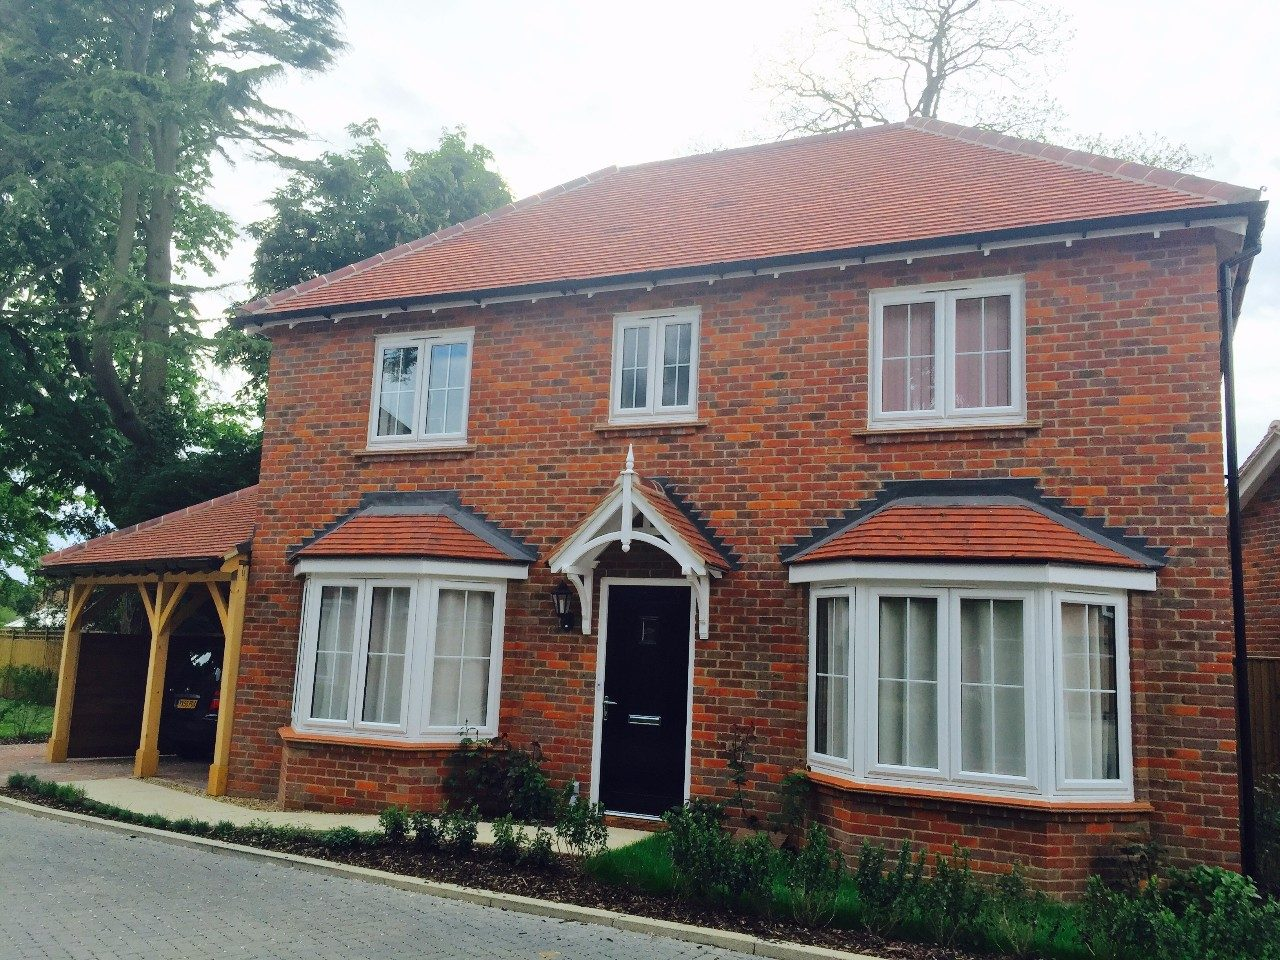 3 Bedroom Detached House To Let In Amersham The Online